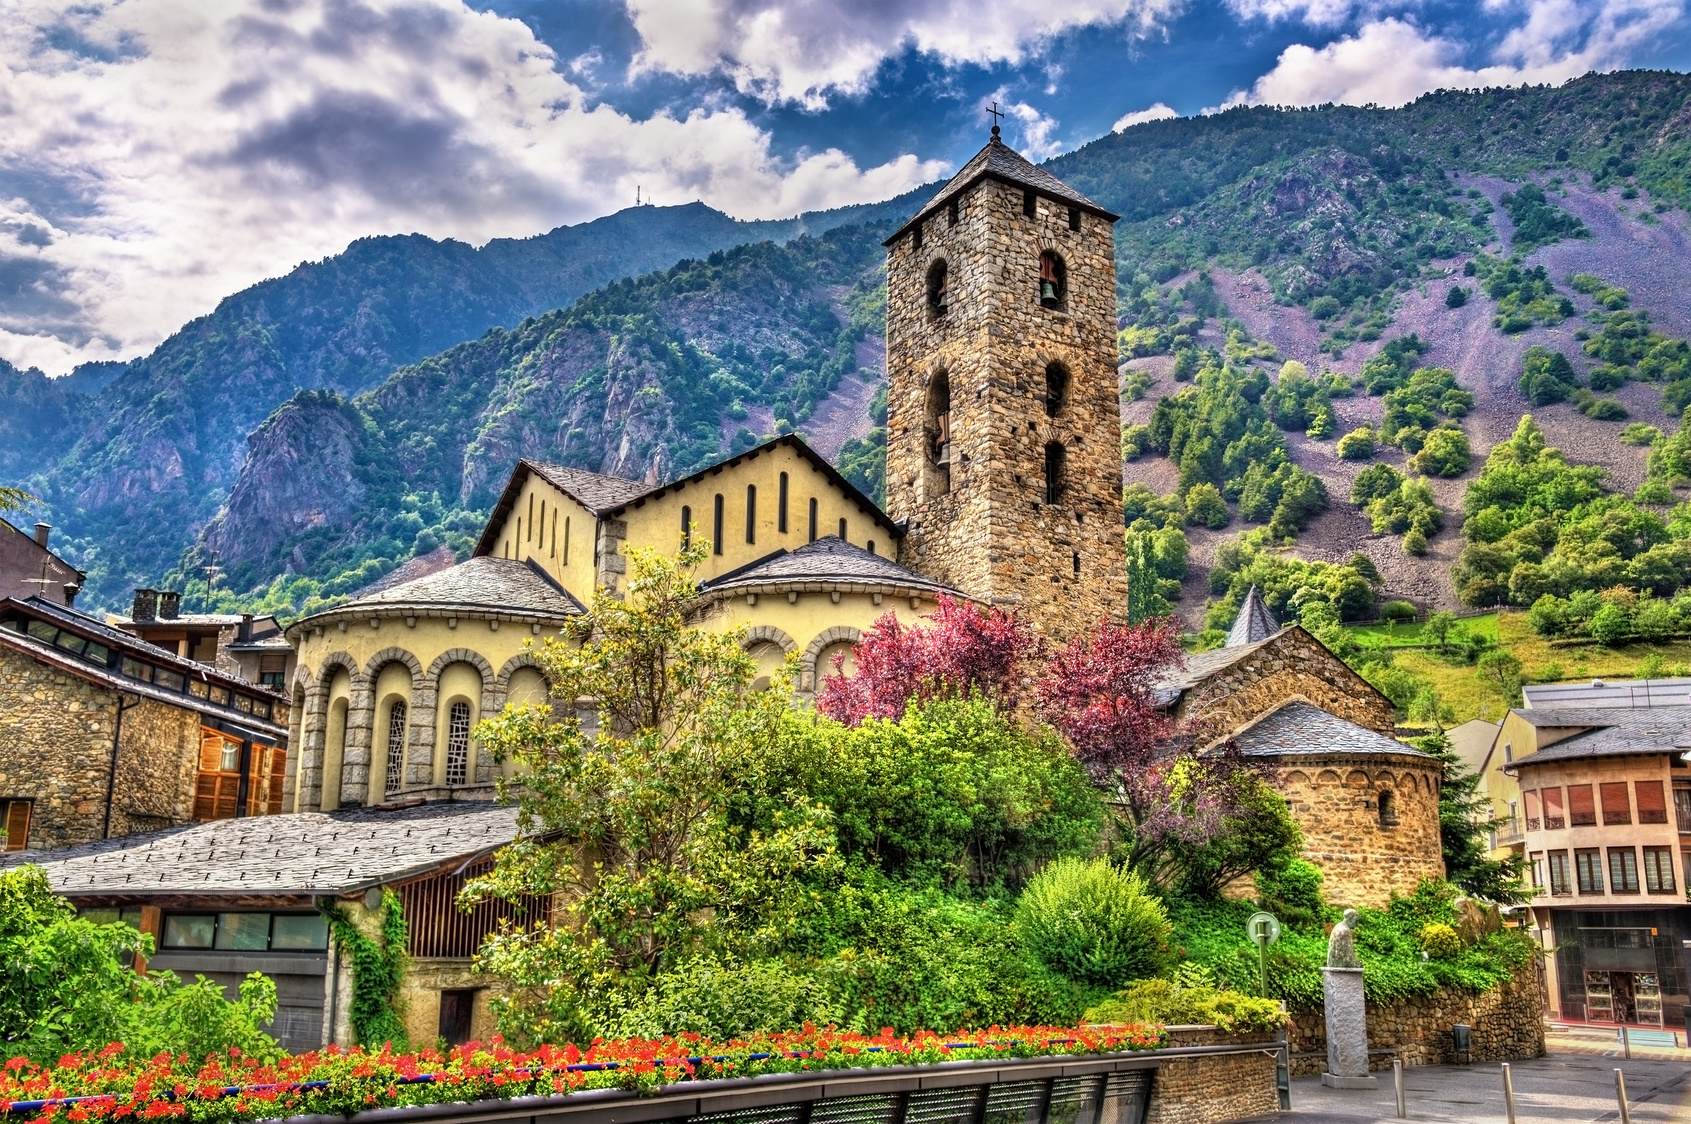 Sant Esteve church in Andorra la Vella, Andorra